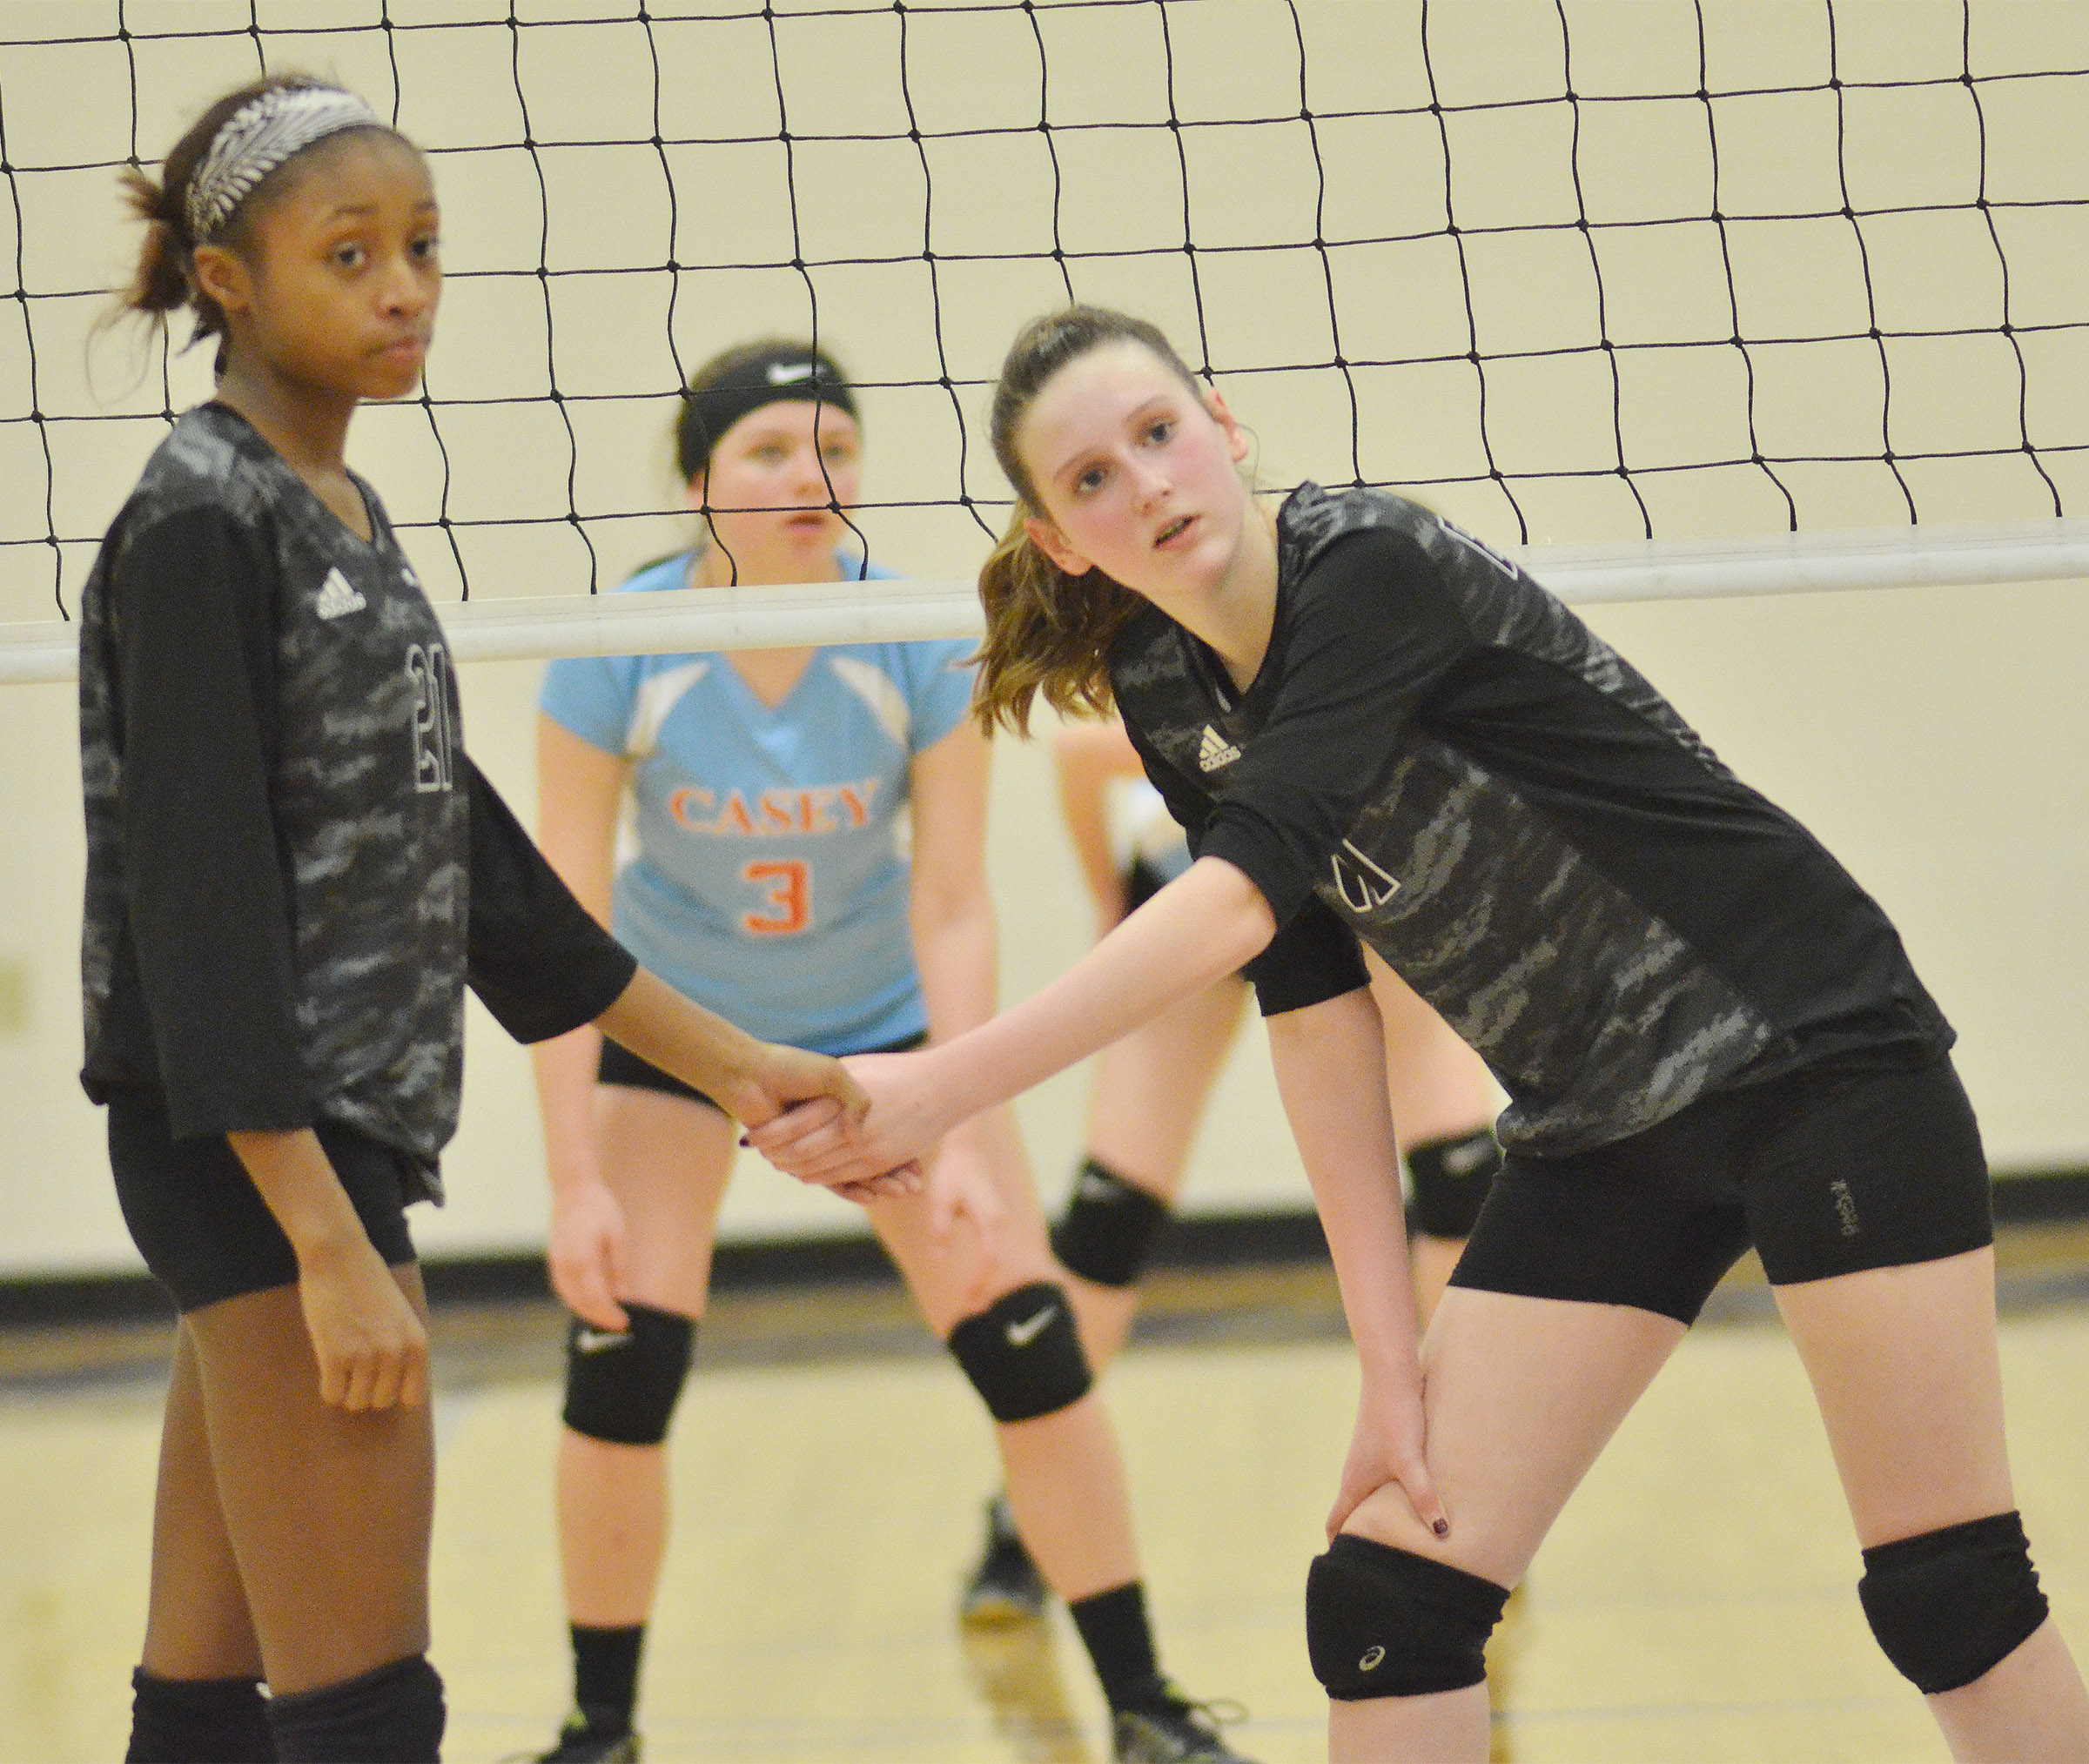 CMS seventh-grader Bri Gowdy, at left, and eighth-grader Zoie Sidebottom get ready for the serve.